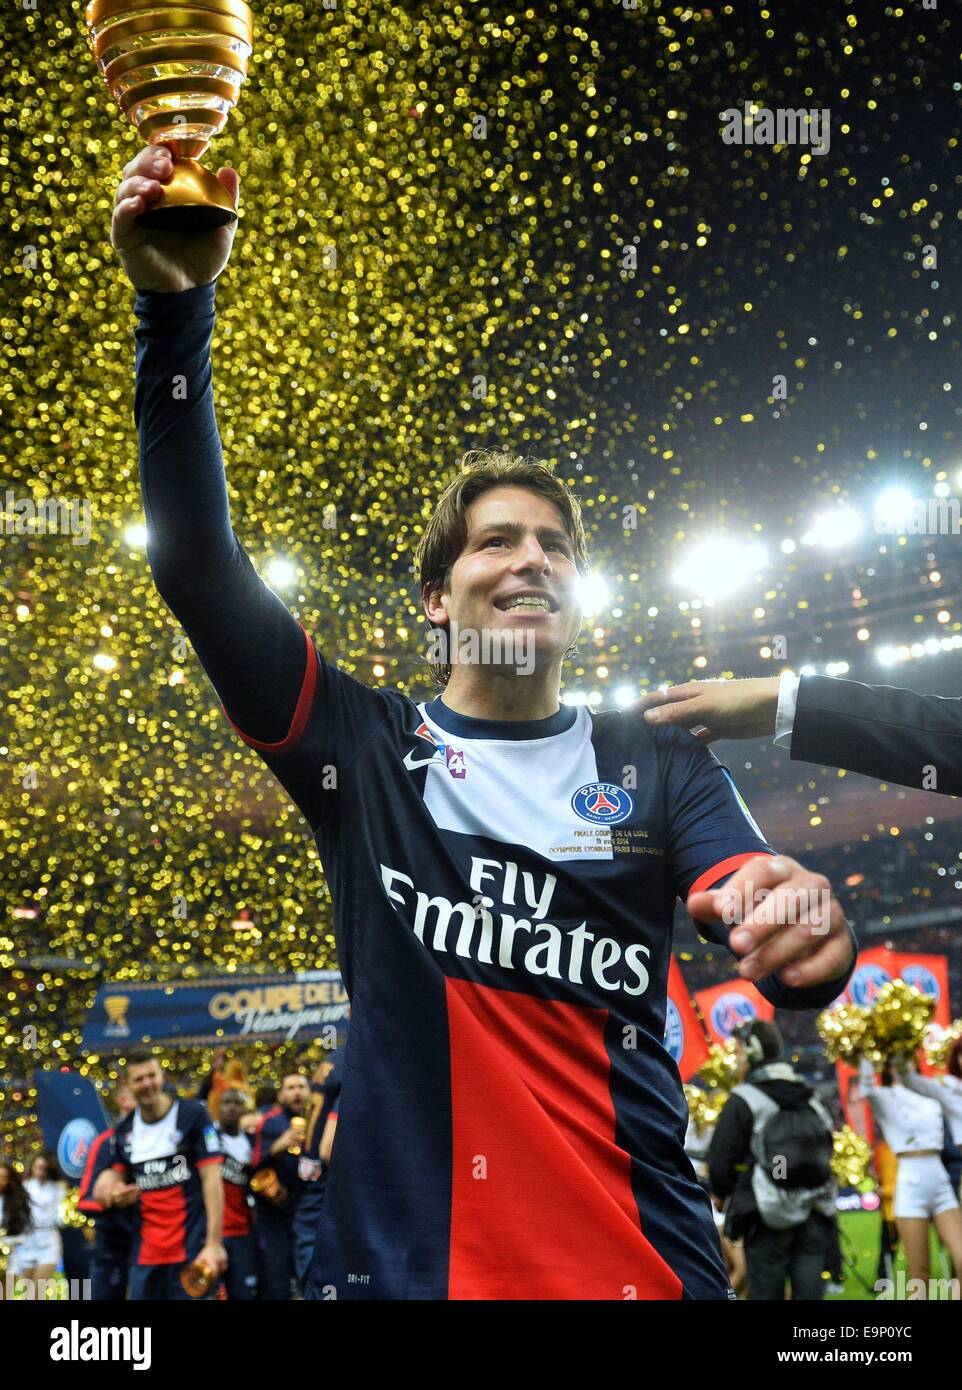 St. Denis, France. 30th October, 2014. Stade de France, St Denis, PSG versus Lyon. Maxwell (psg) with the trophy Stock Photo